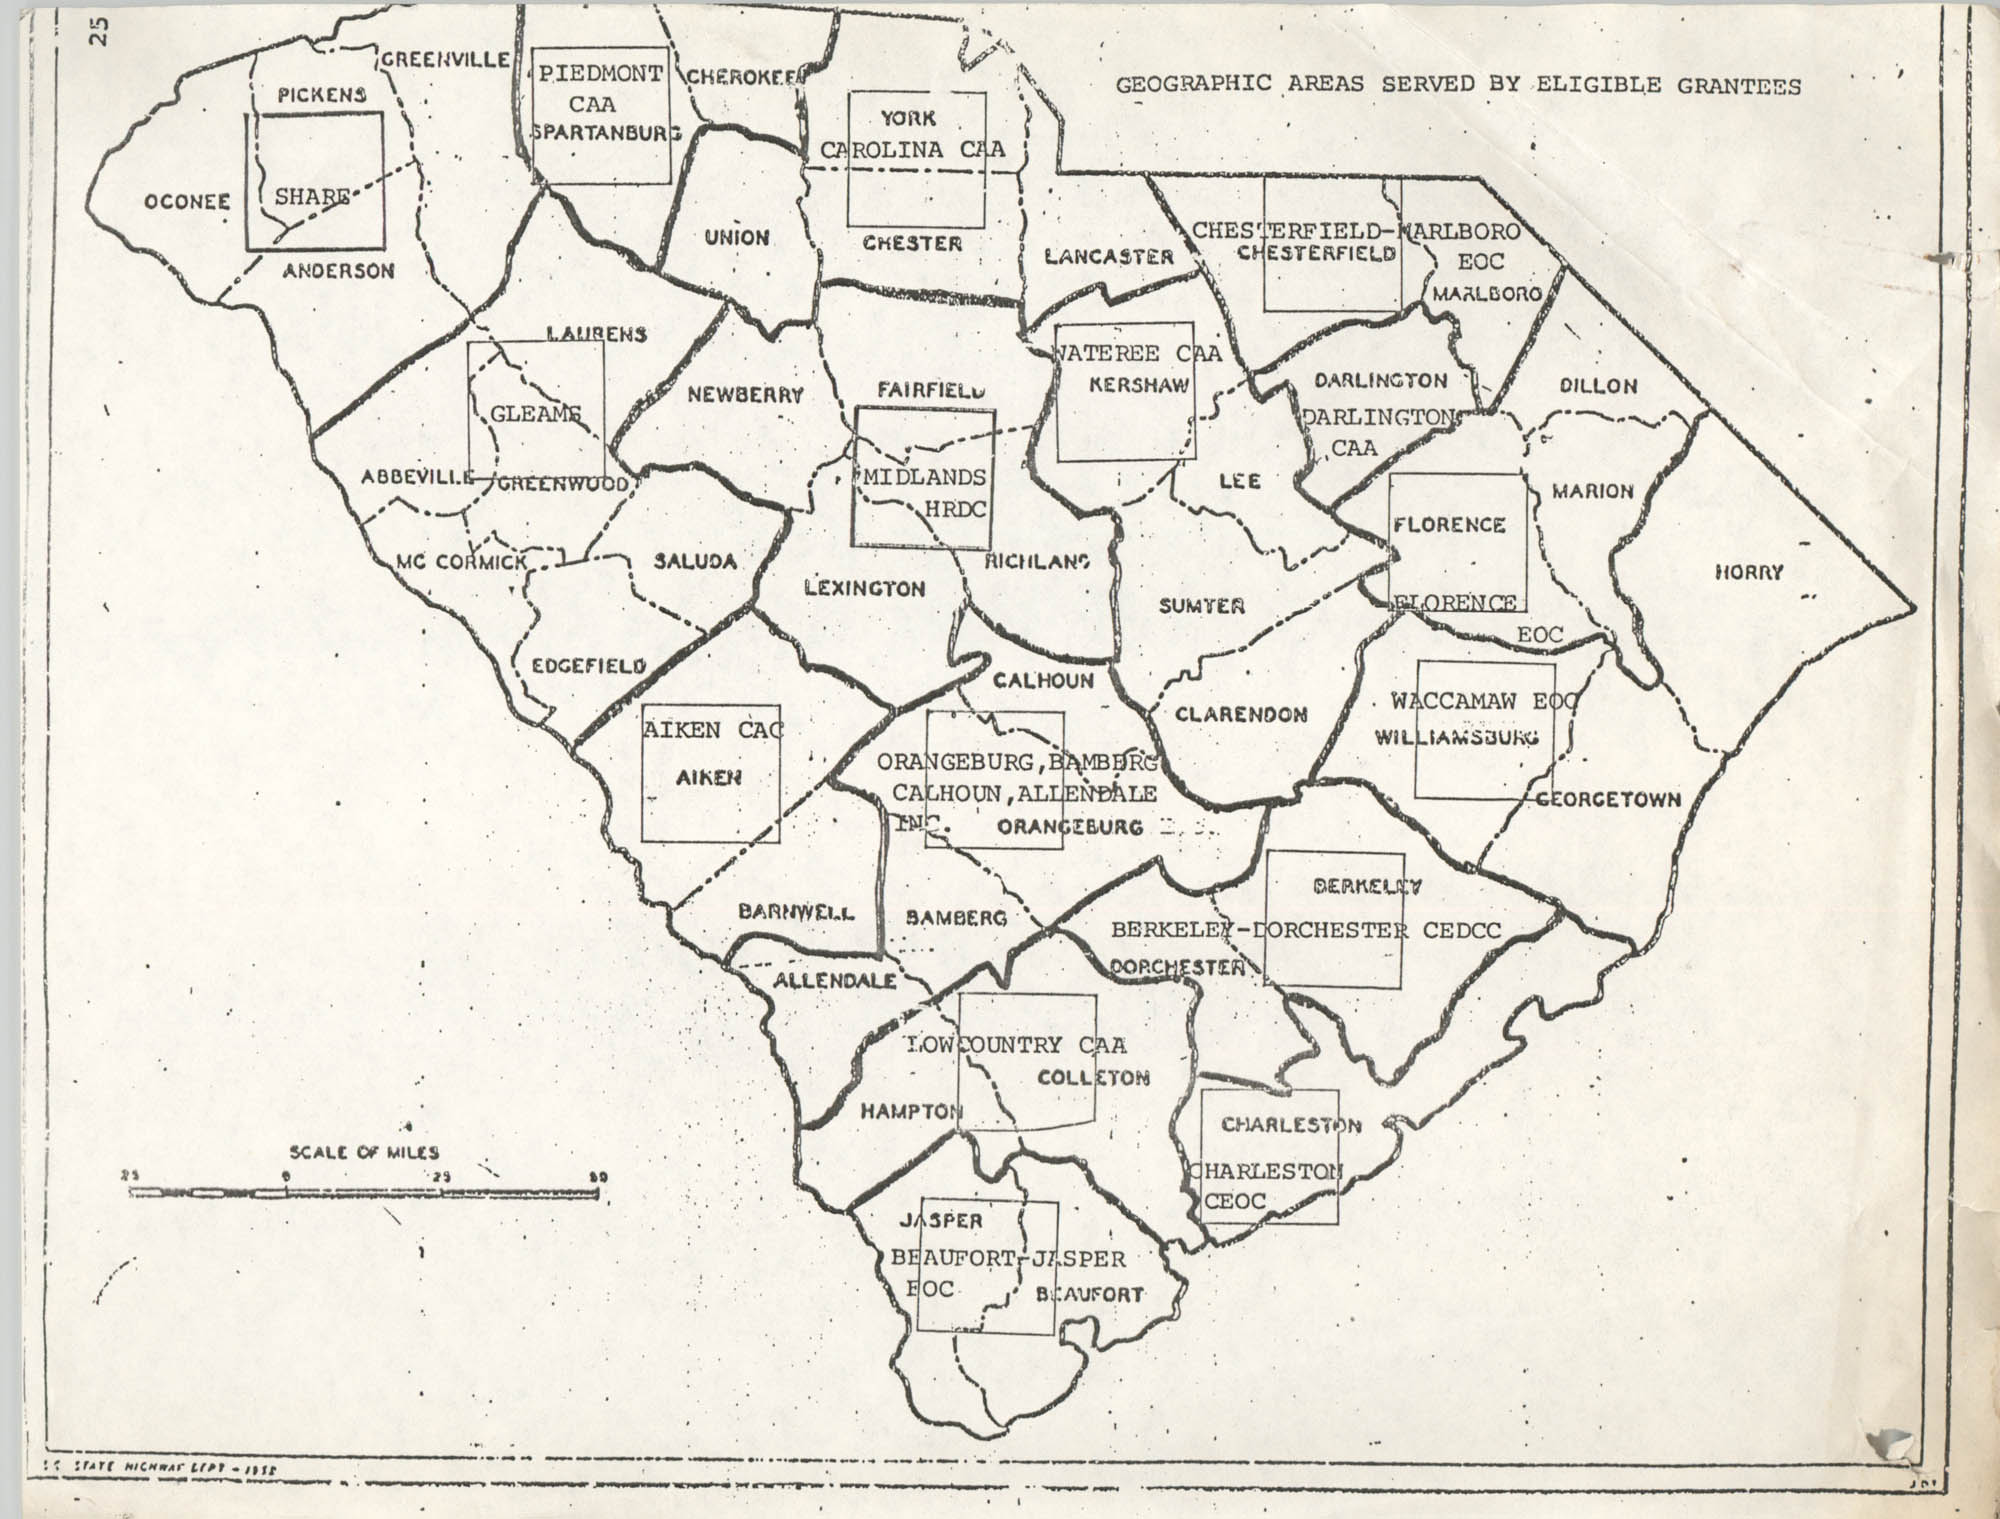 South Carolina State Plan for Implementation of the Community Services Block Grant, South Carolina Map